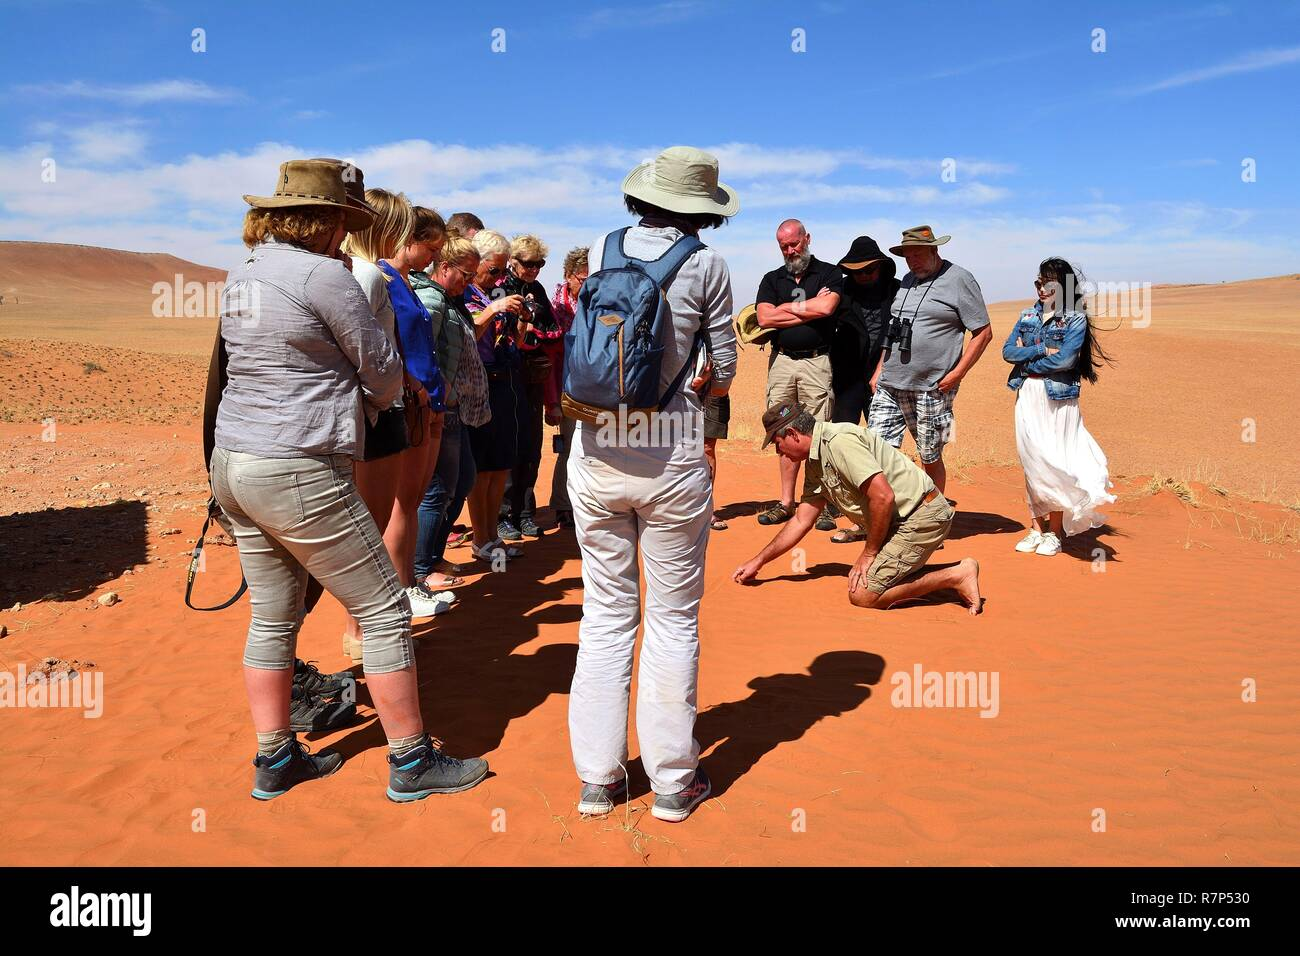 Namibia, Namib-Naukluft, Solitaire, a guided visit of the desert with Gideon Boesman David, a famous expert, about the desert and the Bushmen - Stock Image